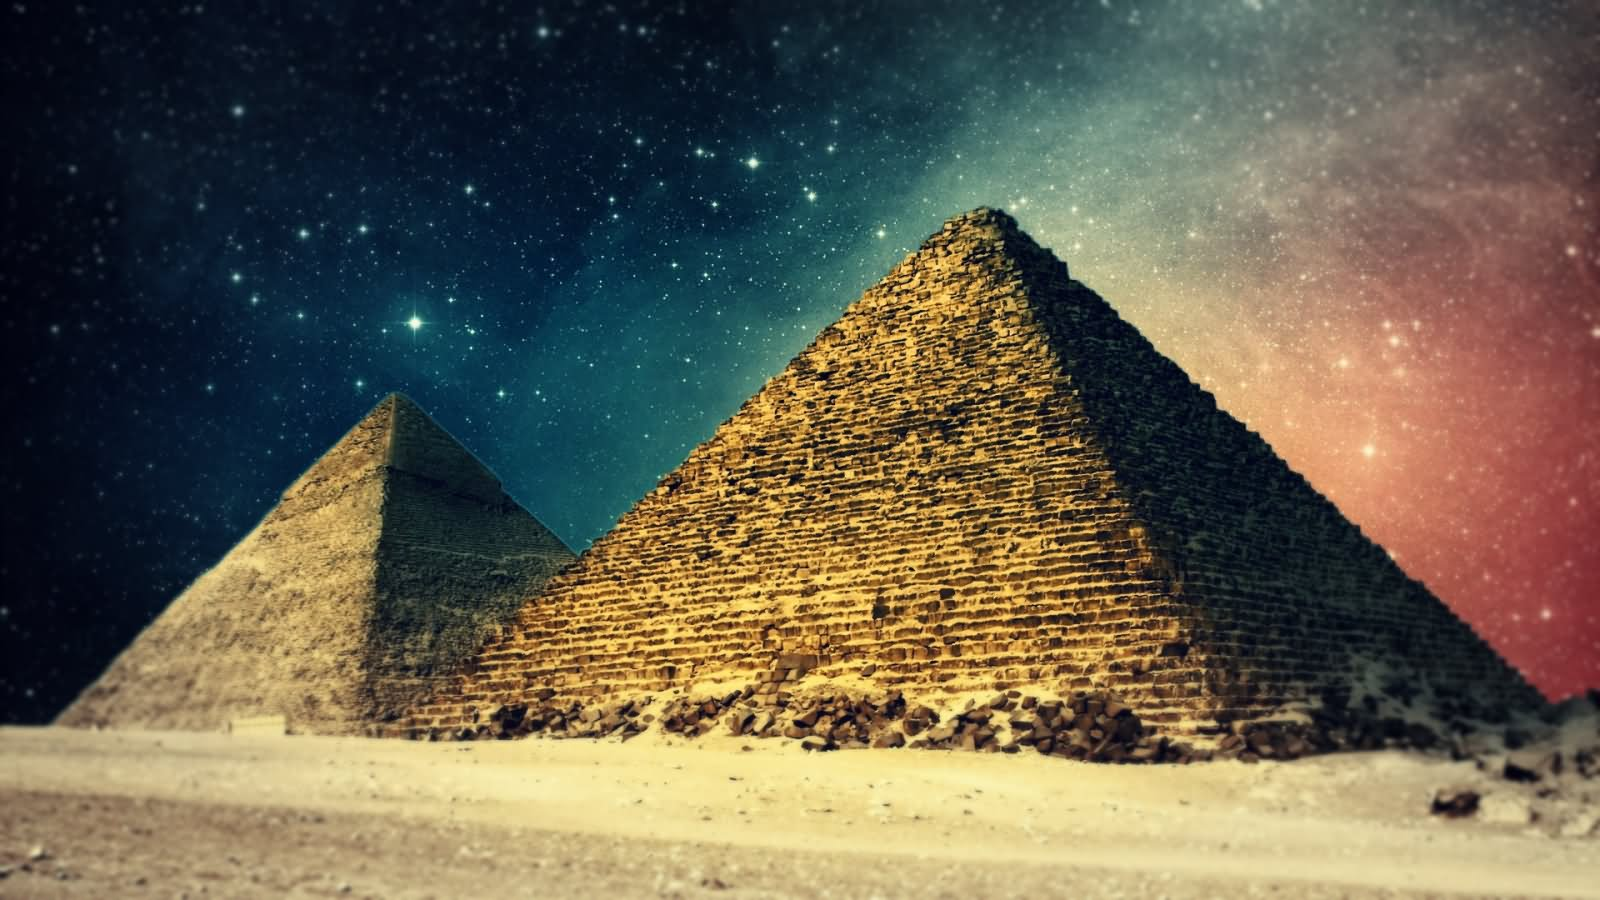 Adorable Night View Of Egyptian Pyramid